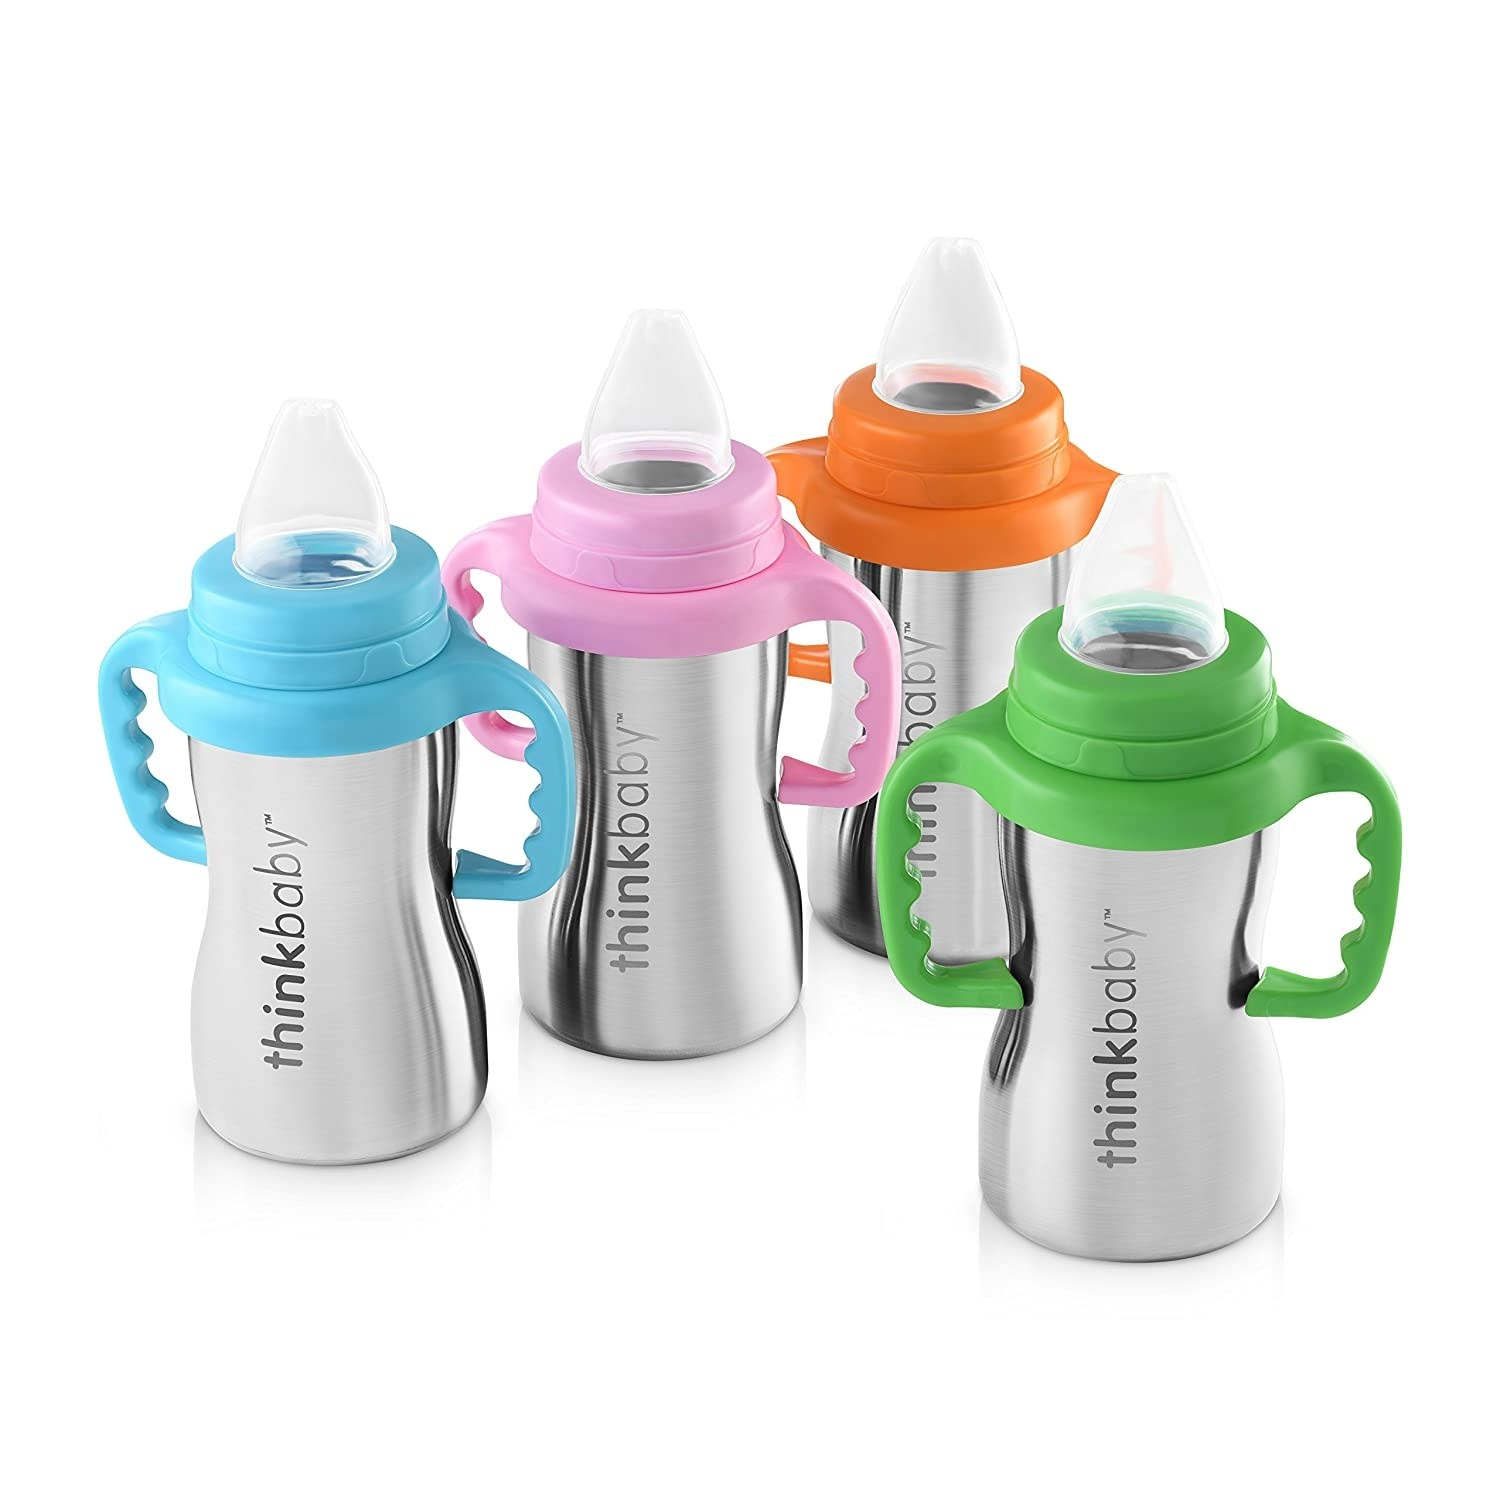 Sippy cups for toddlers with a stainless steel bottle, plastic handle, and silicone nipple.